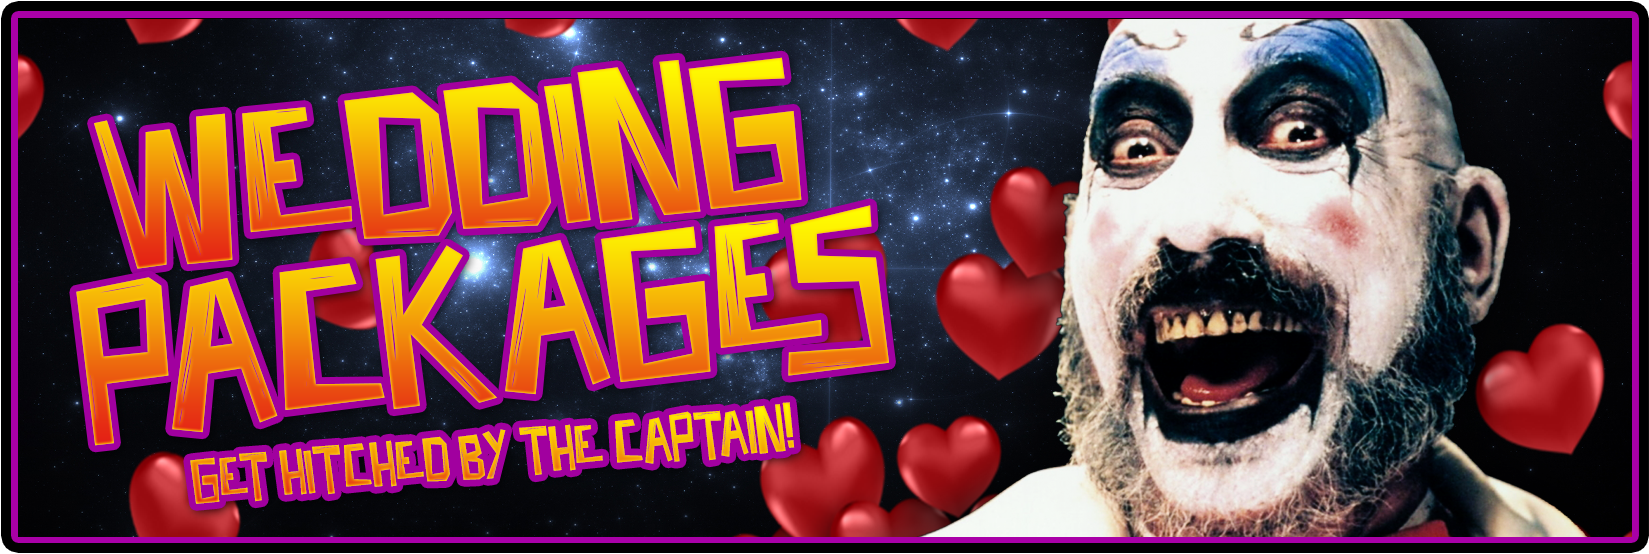 Astronomicon Wedding Packages Banner .png